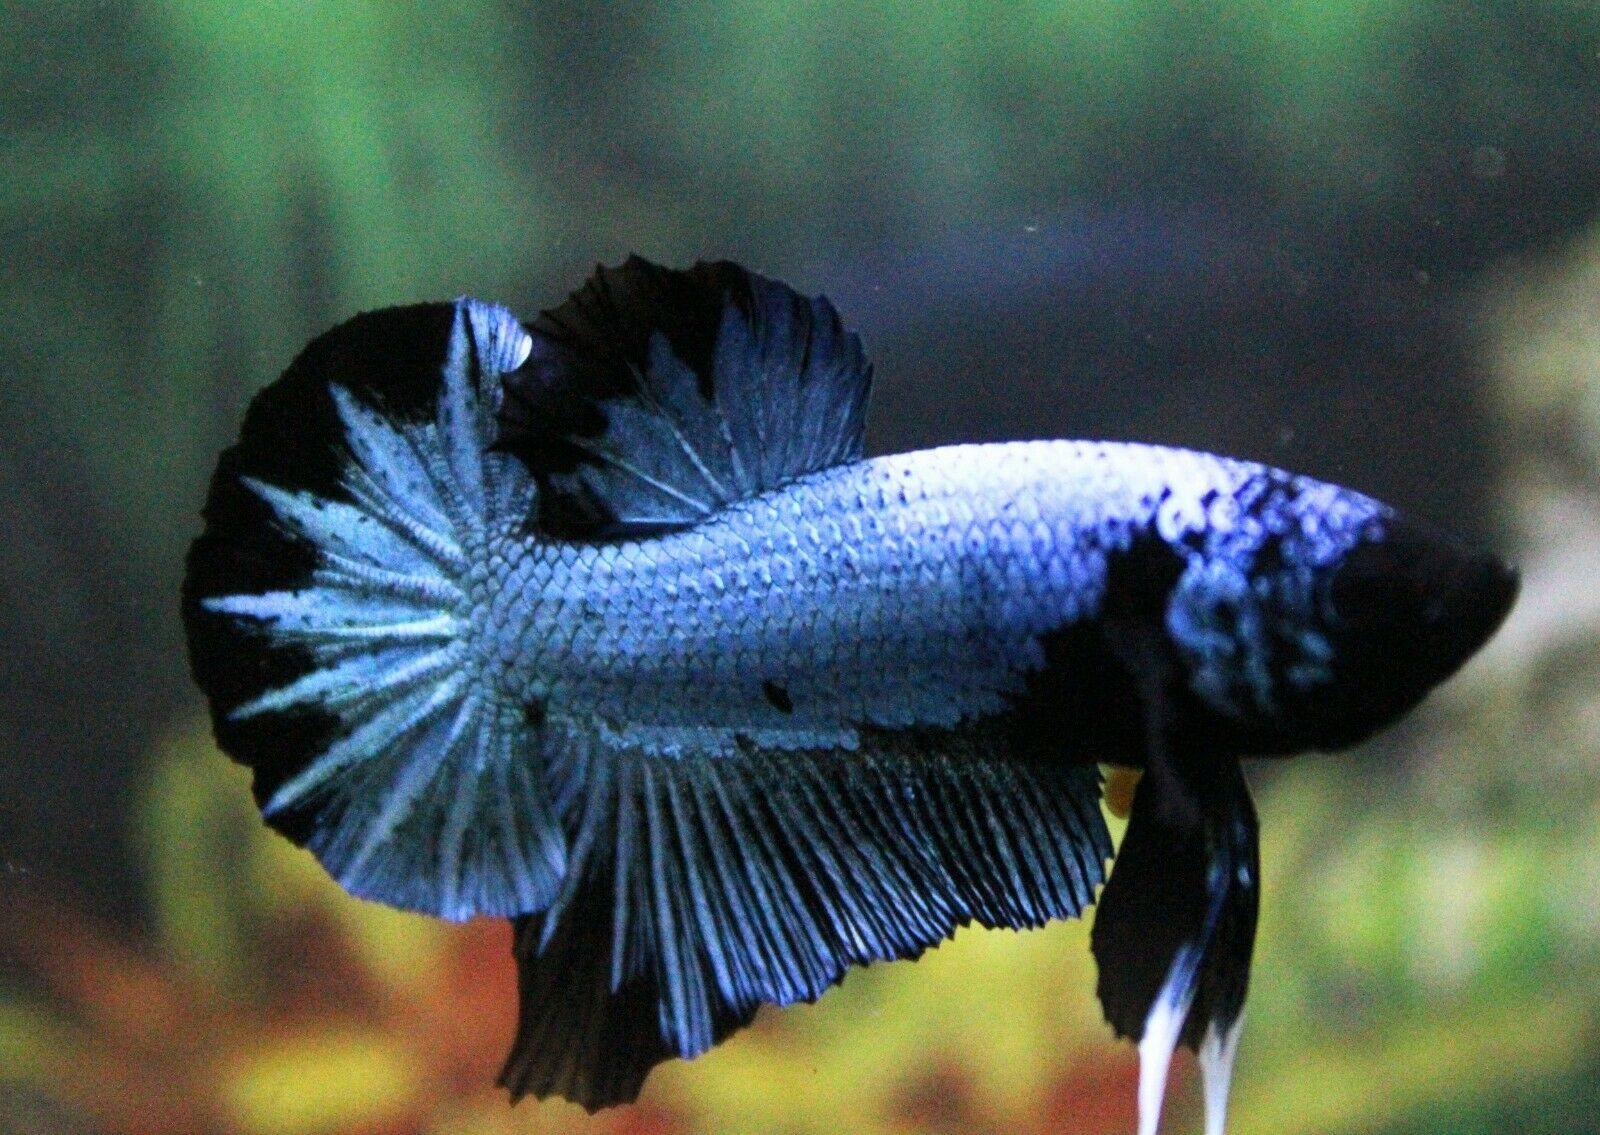 Pin By Just Cichlids On Fish In 2020 Betta Fish Betta Siamese Fighting Fish